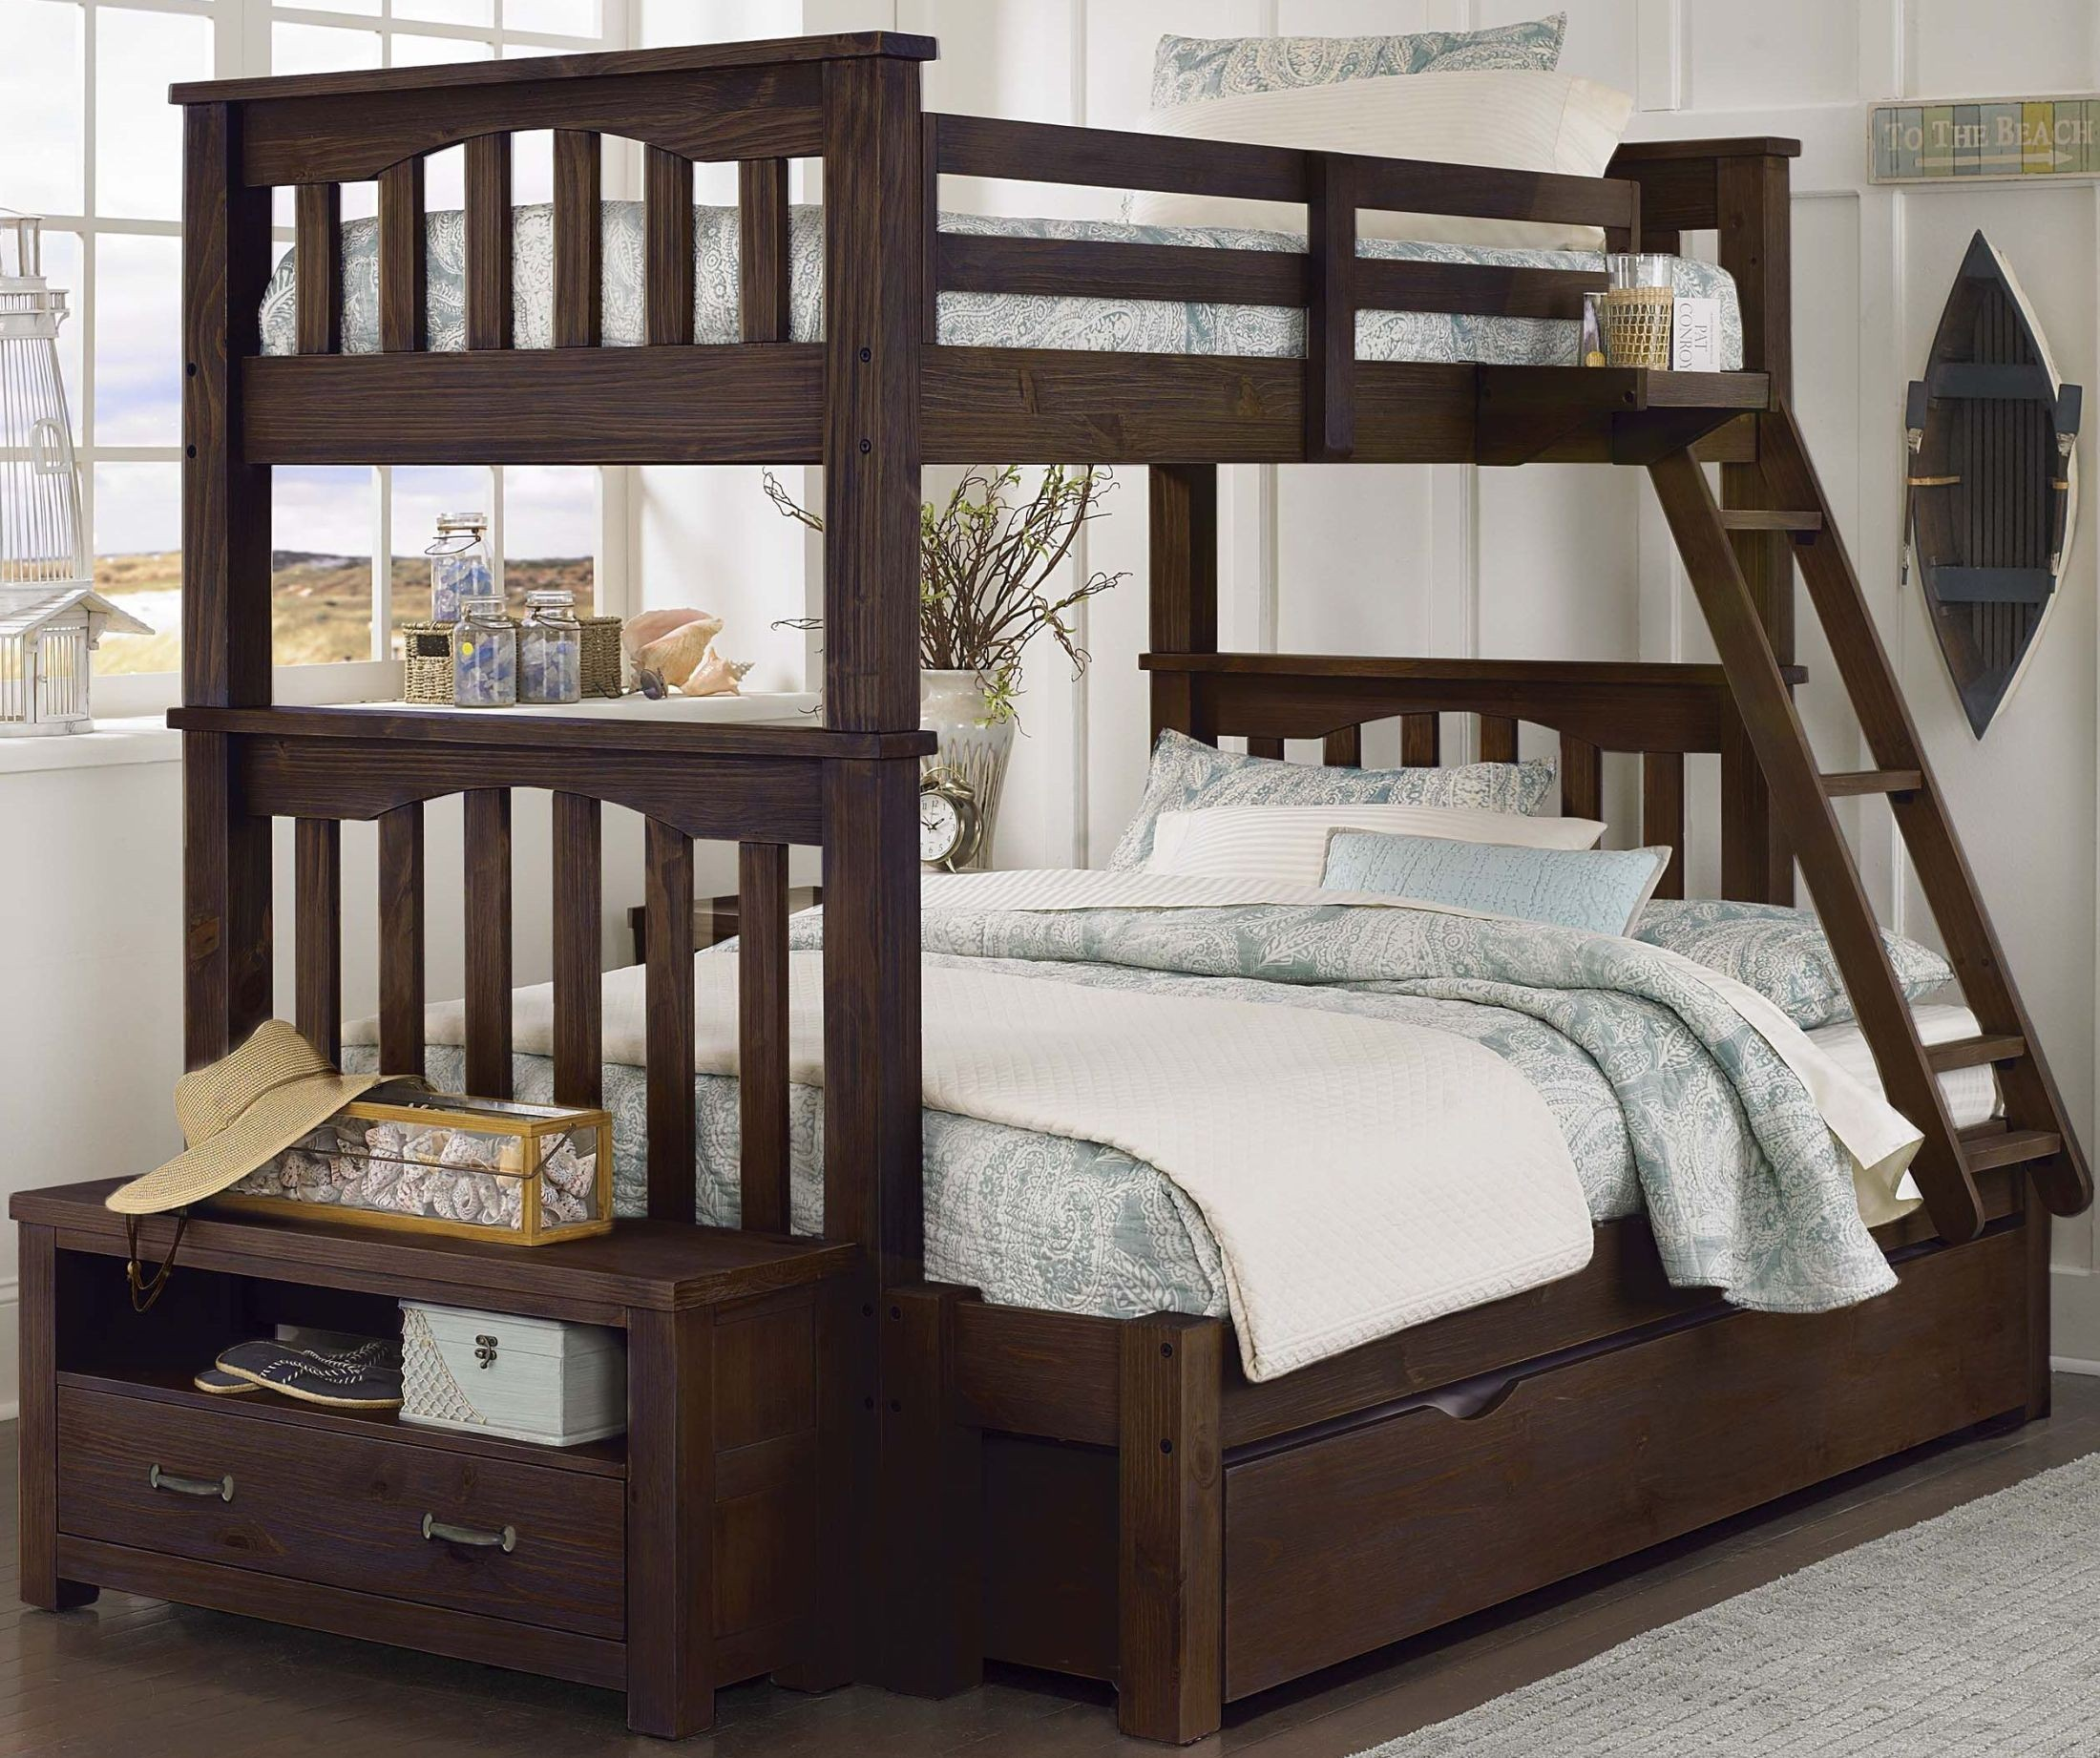 Espresso Twin Bunk Beds ~ Highlands harper espresso twin over full bunk bed with